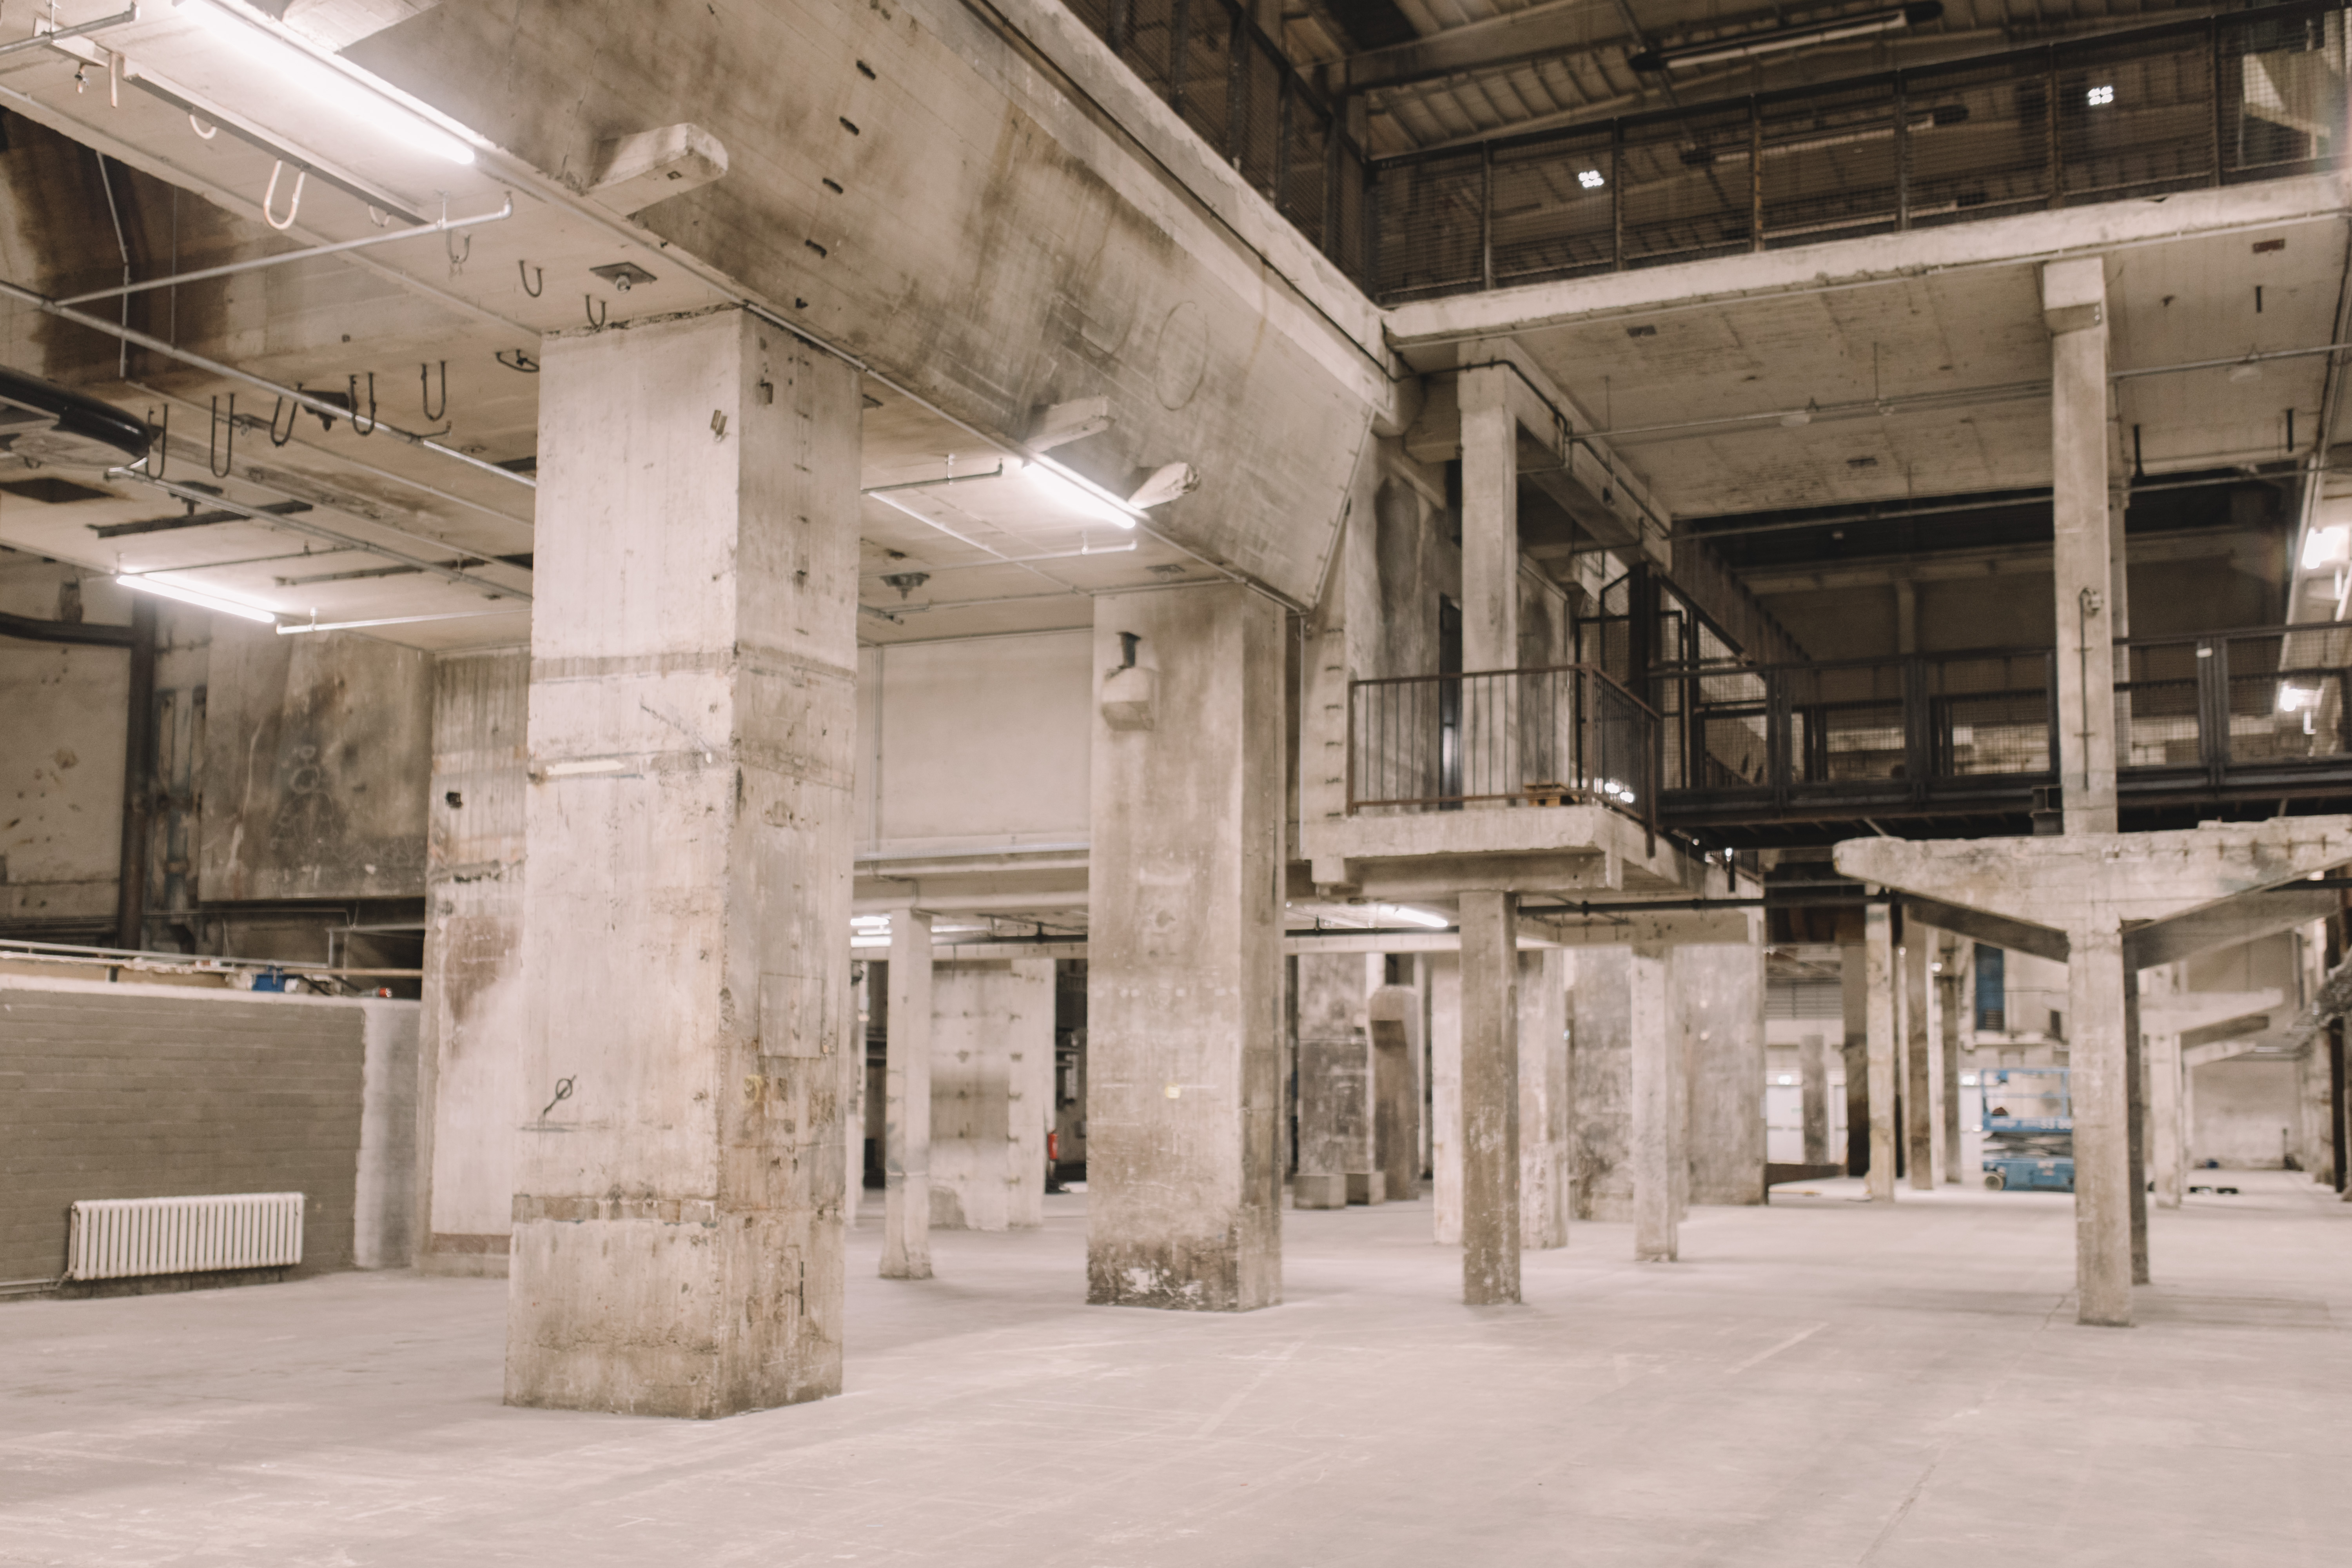 Inside of the Kraftwerk, a power station converted event space in Berlin